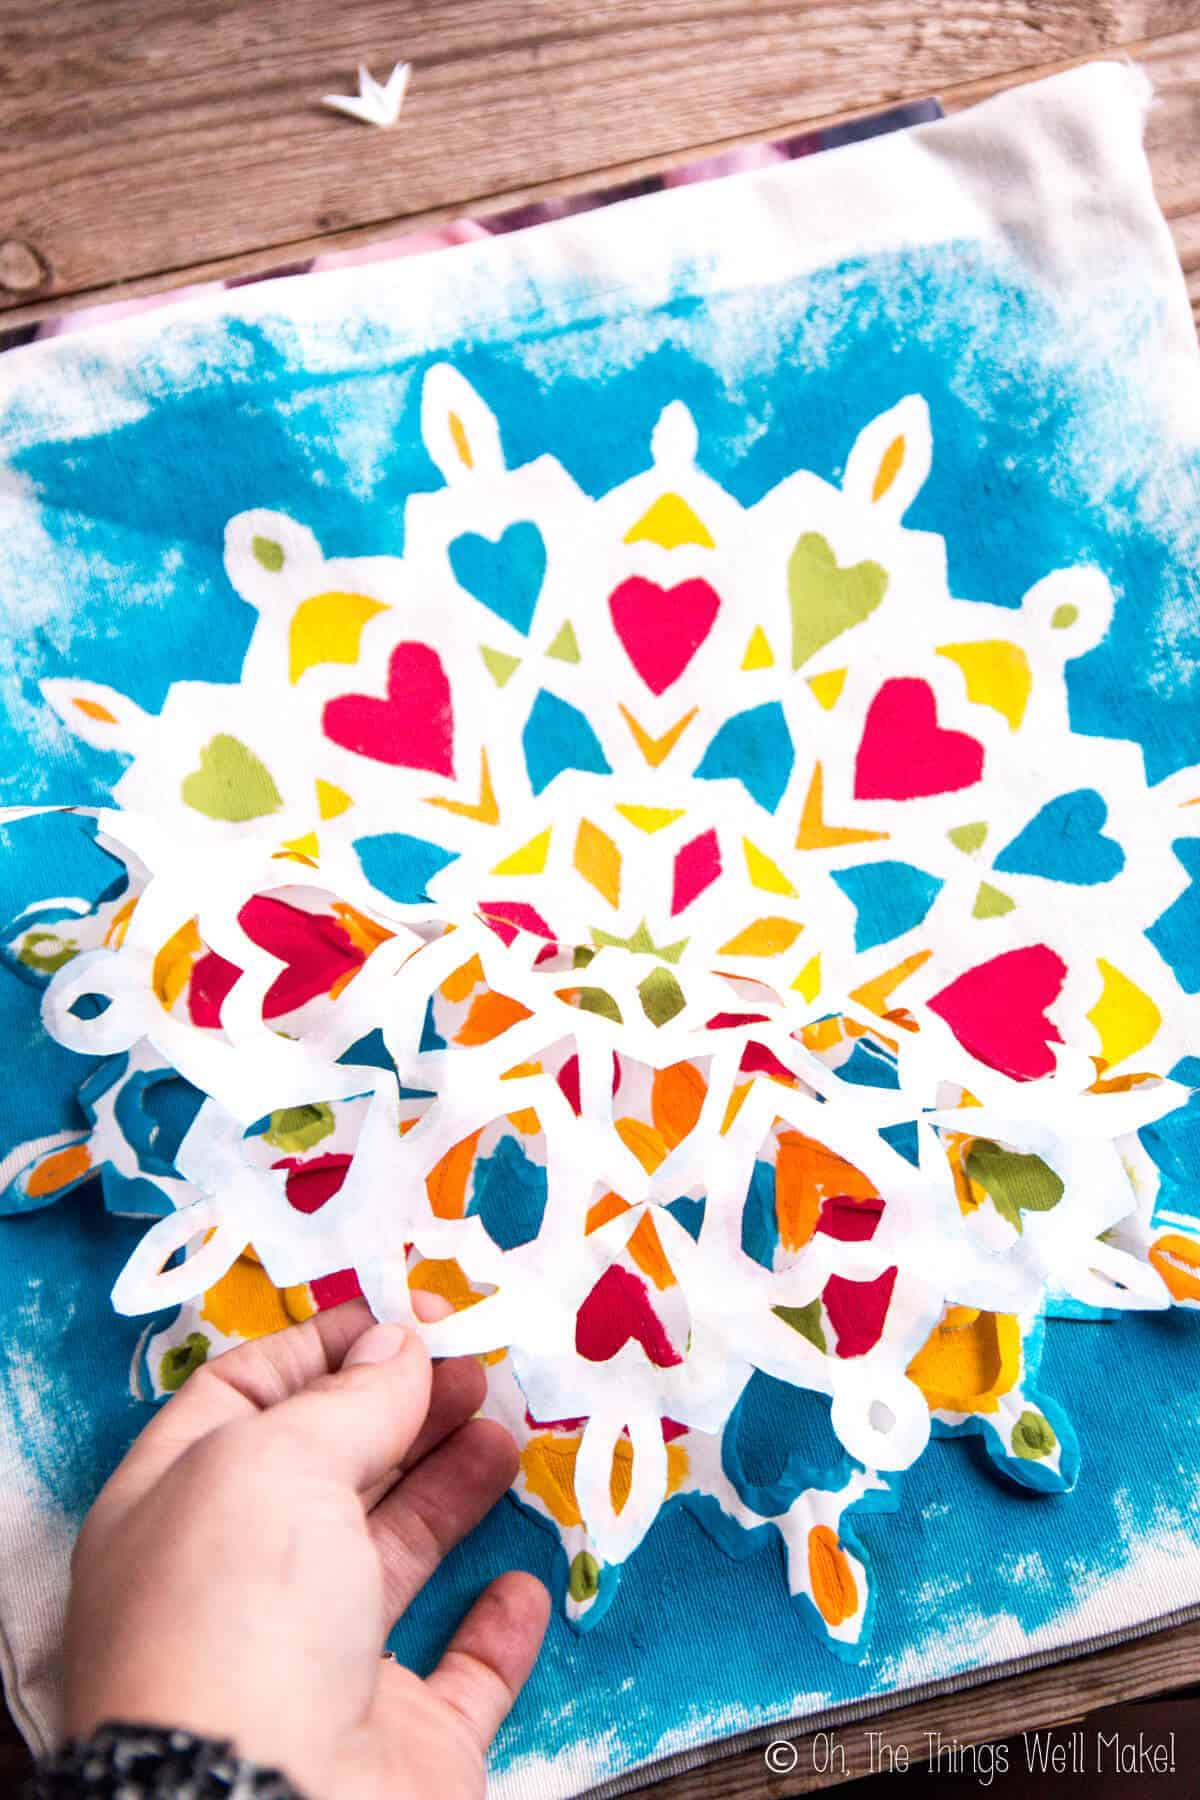 Peeling off the freezer paper snowflake stencil to reveal a beautiful mandala painted on a fabric bag.